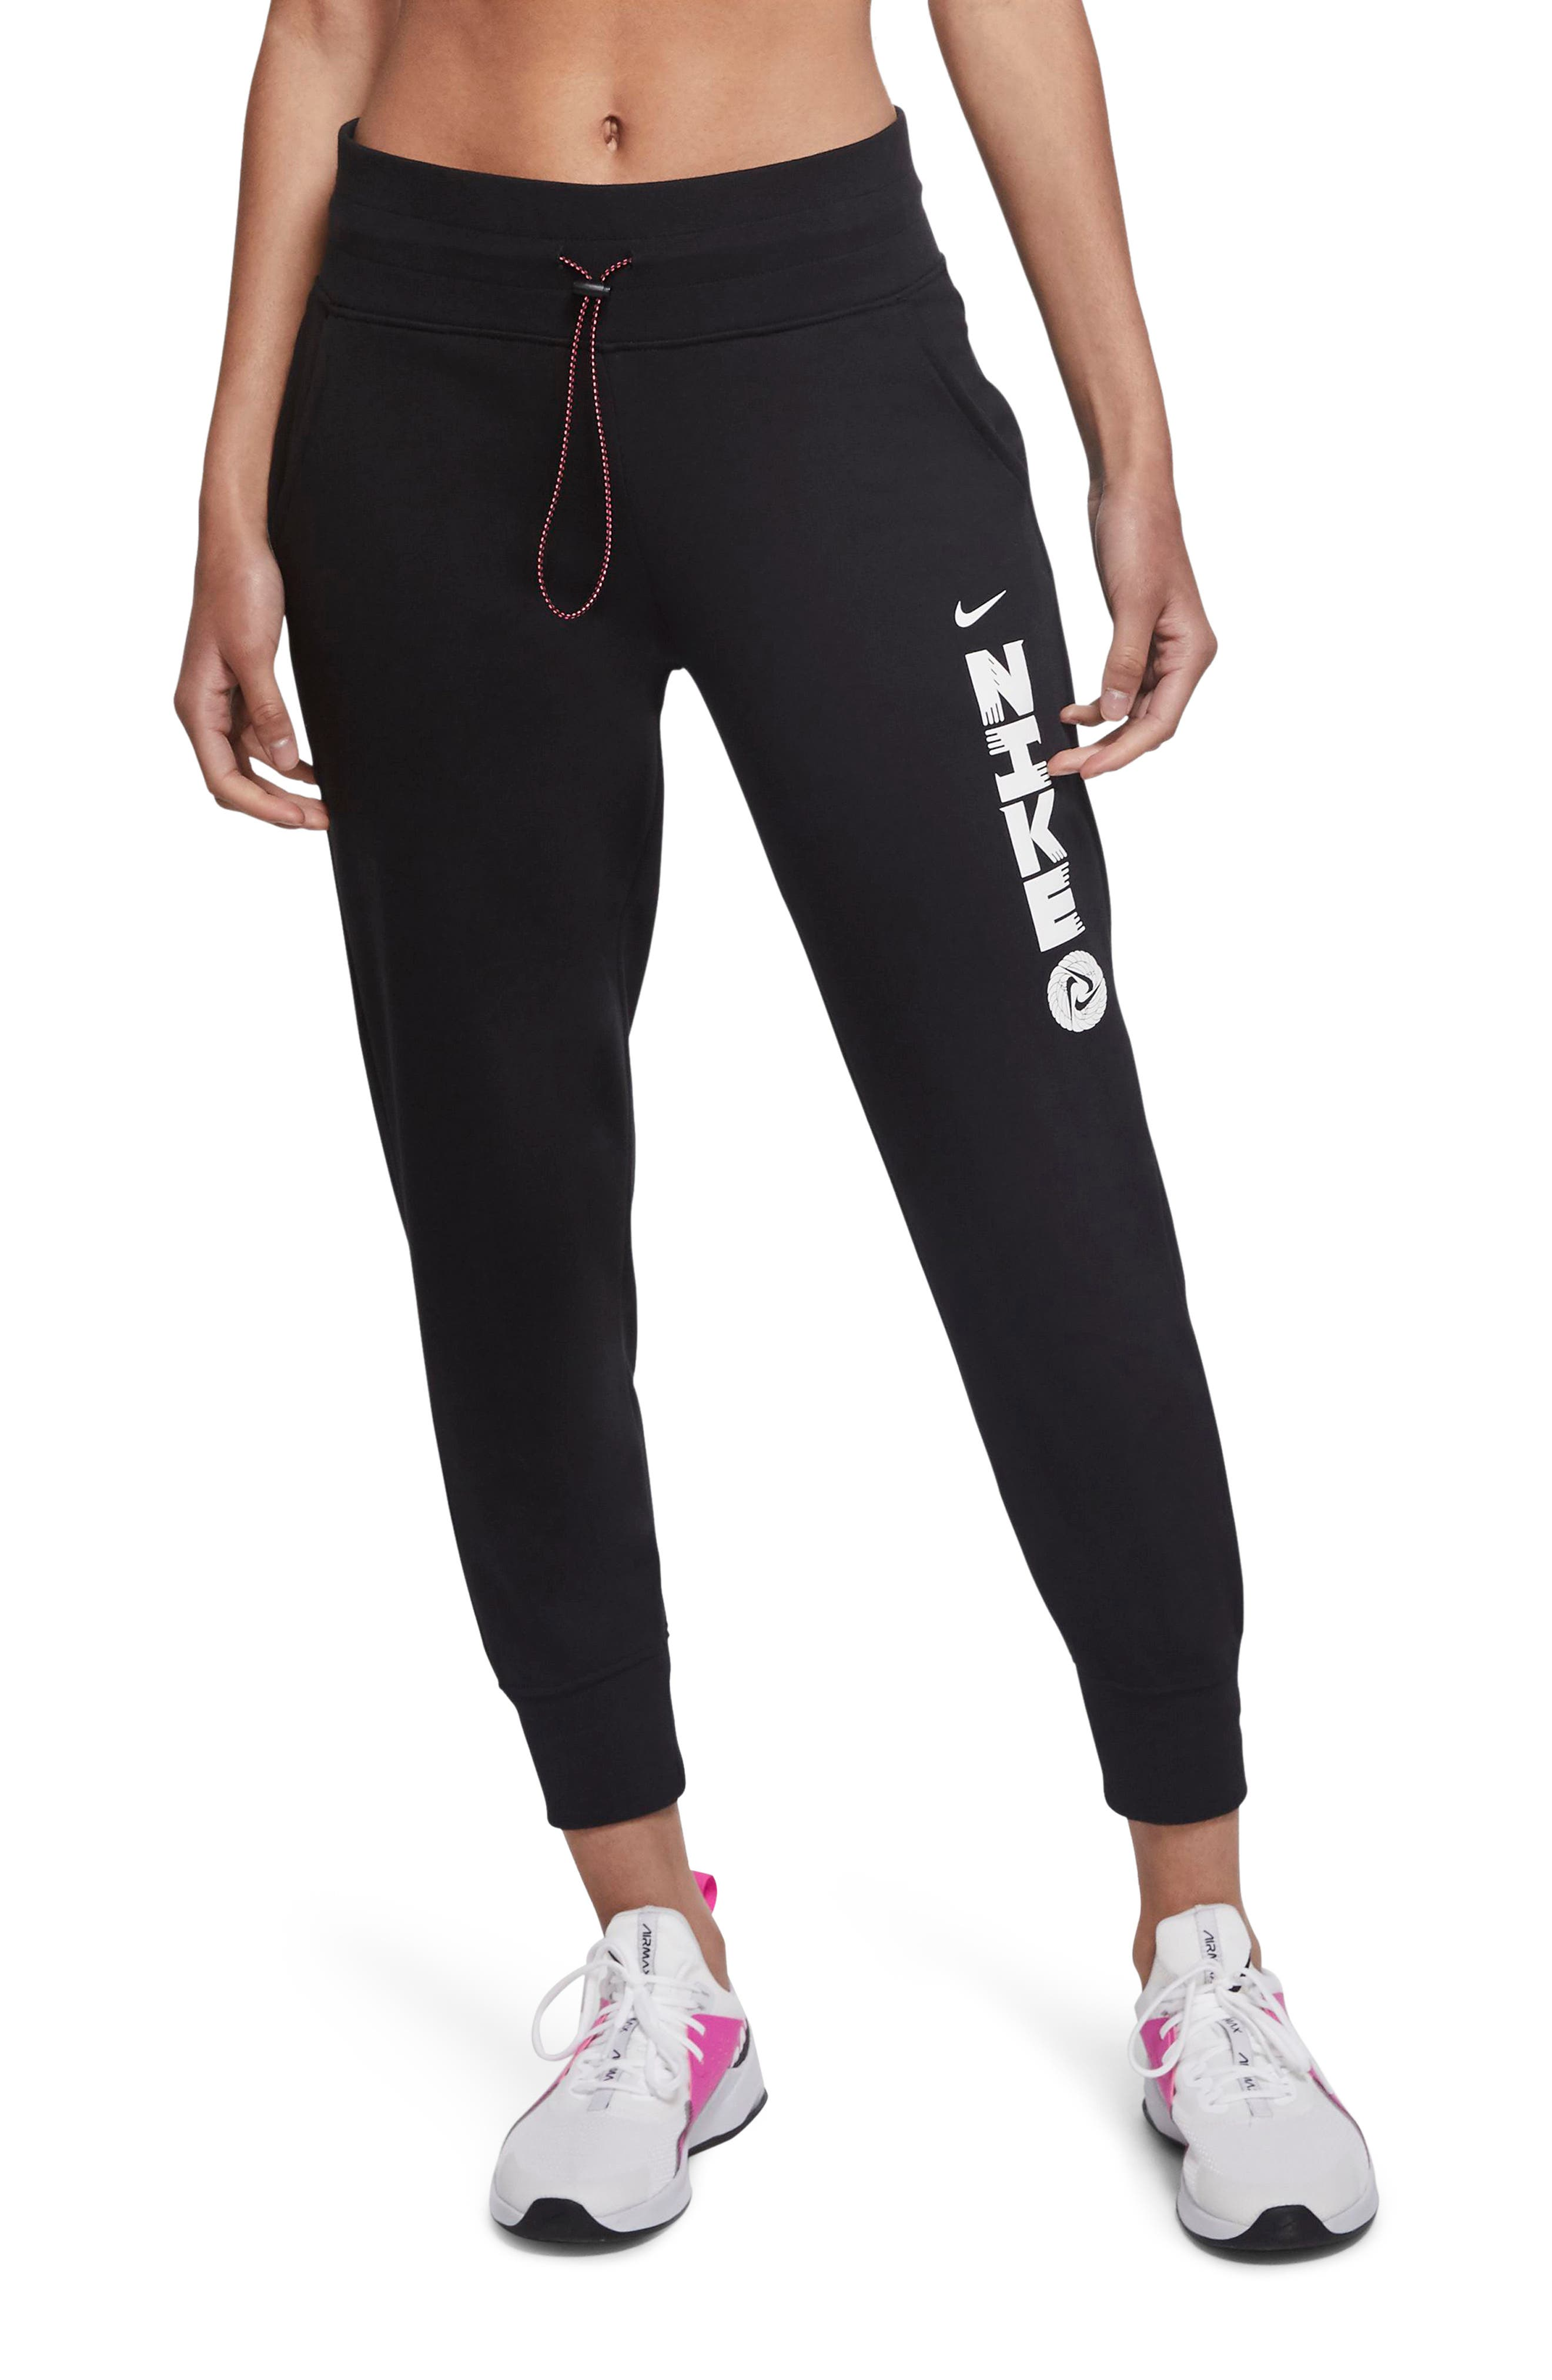 Women's Nike Icon Clash 7/8 Sweatpants